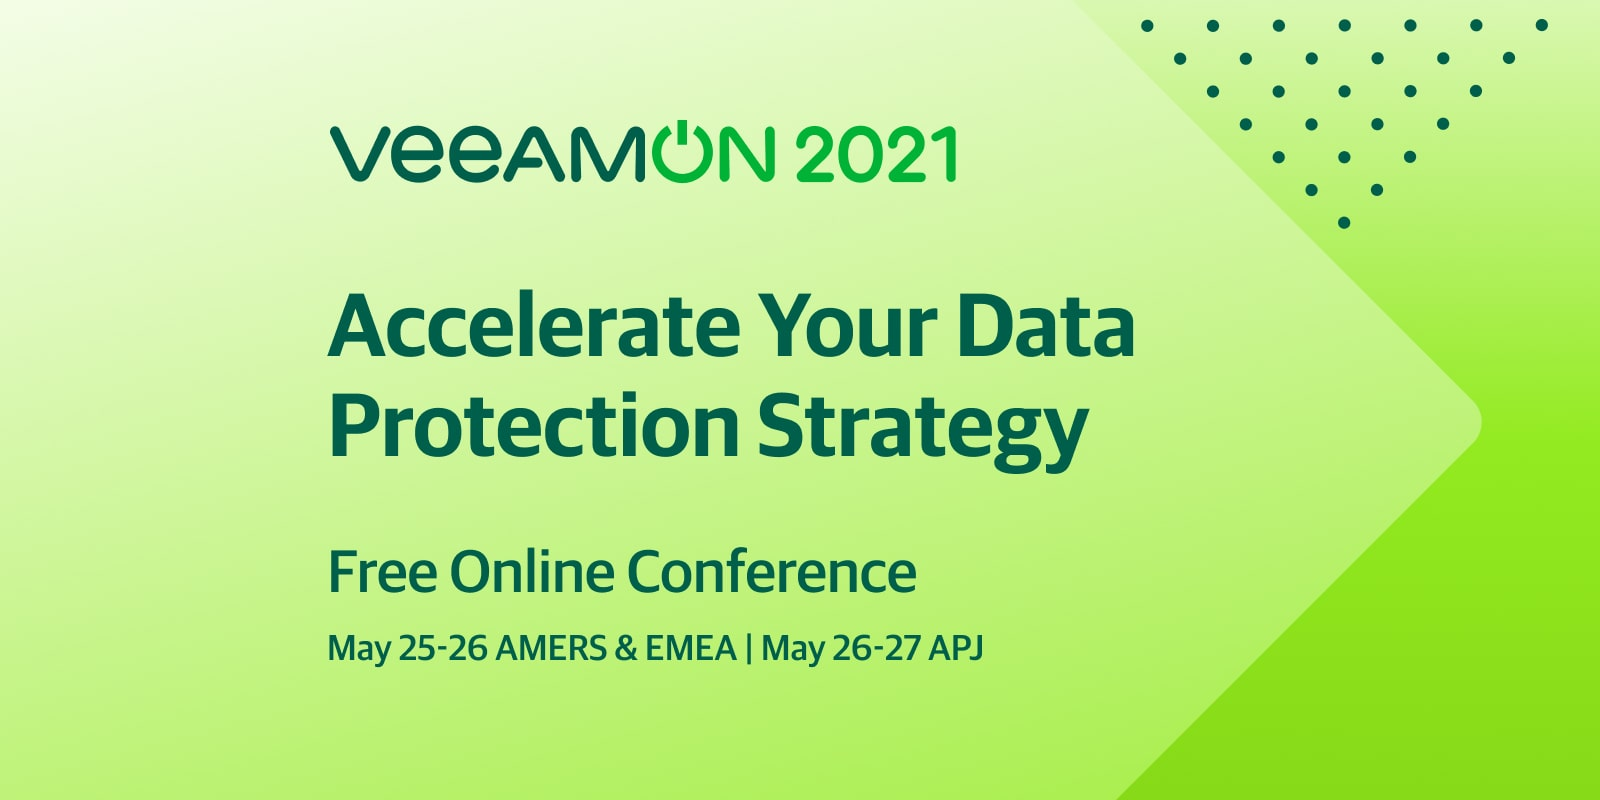 Veeam Unveils the Future of Modern Data Protection at VeeamON 2021